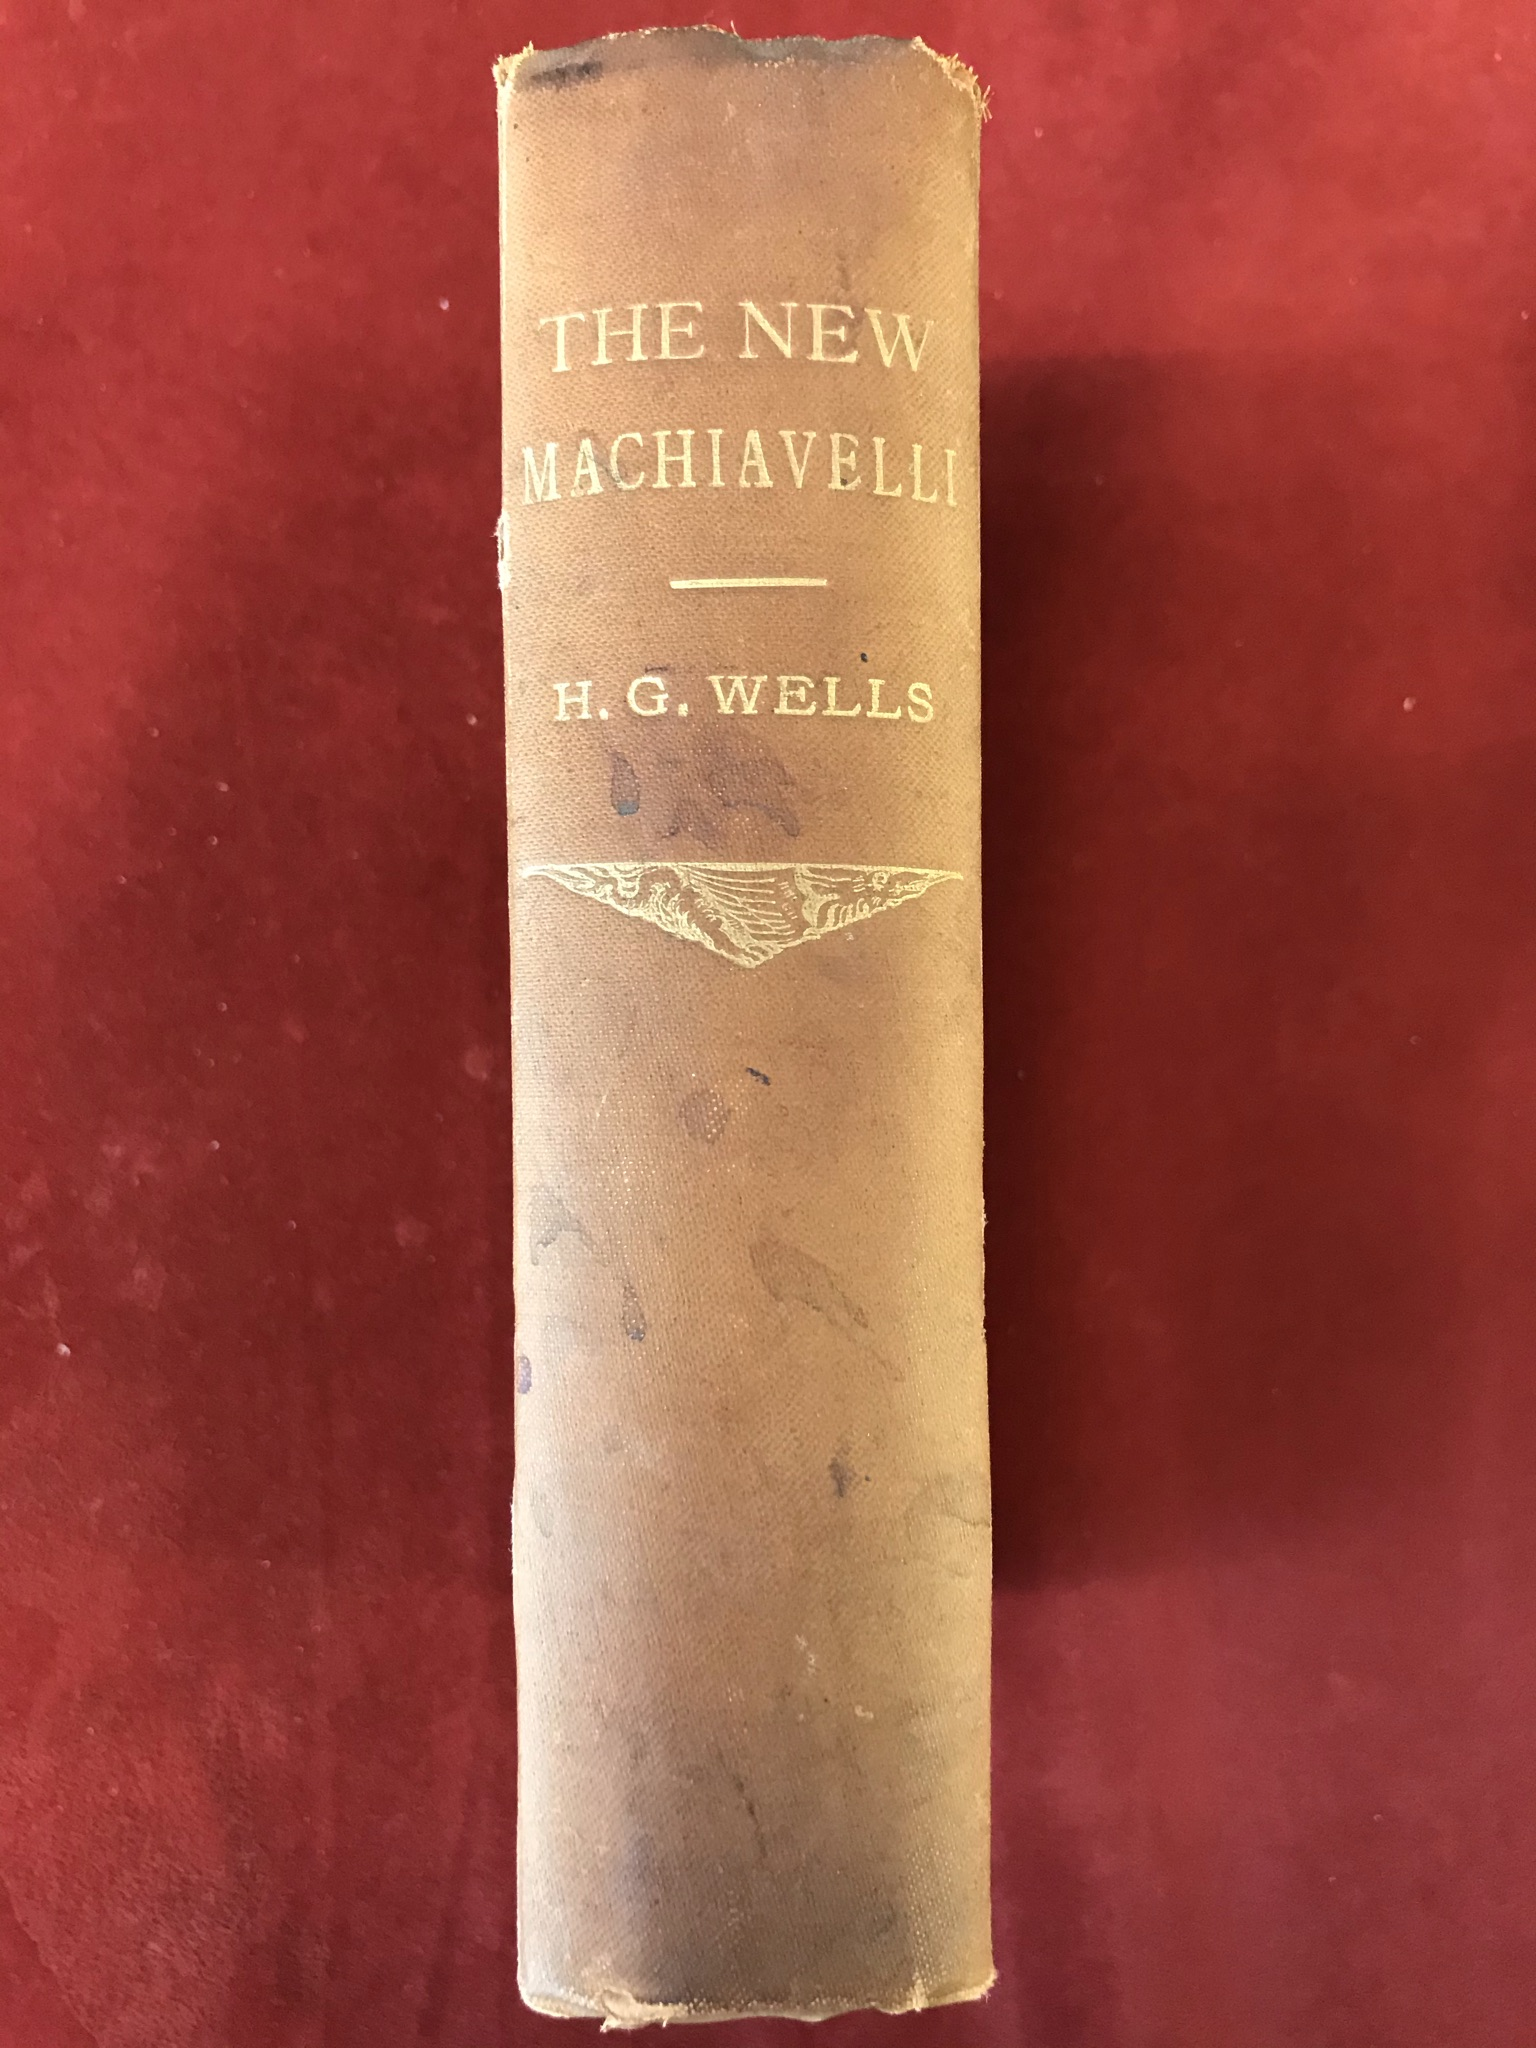 The New MachiavelliFirst edition, 1911 - Image 2 of 3